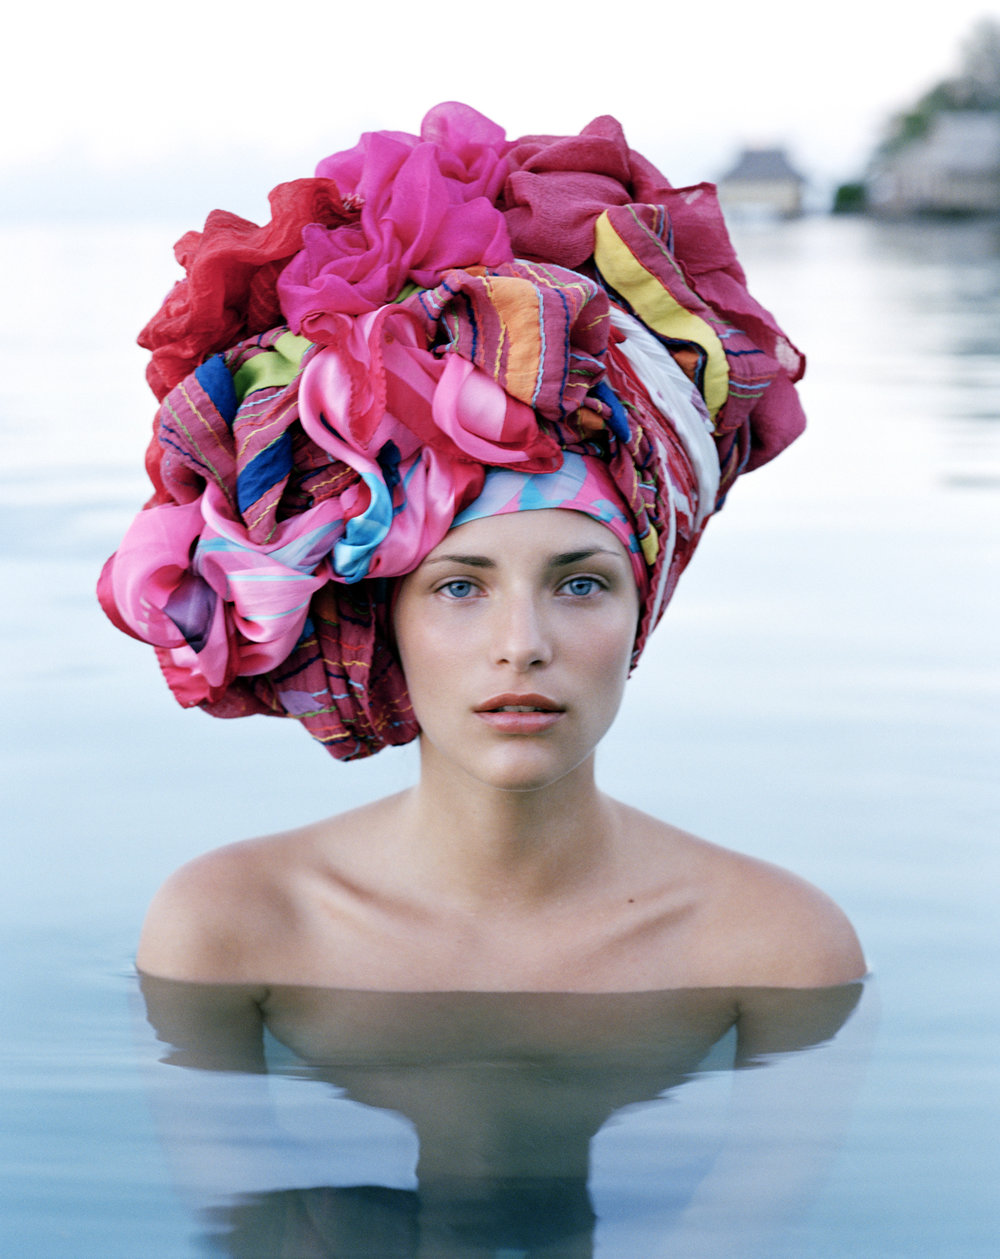 HEADSCARF ARRANGEMENT BY MARTYN FOSS CALDER